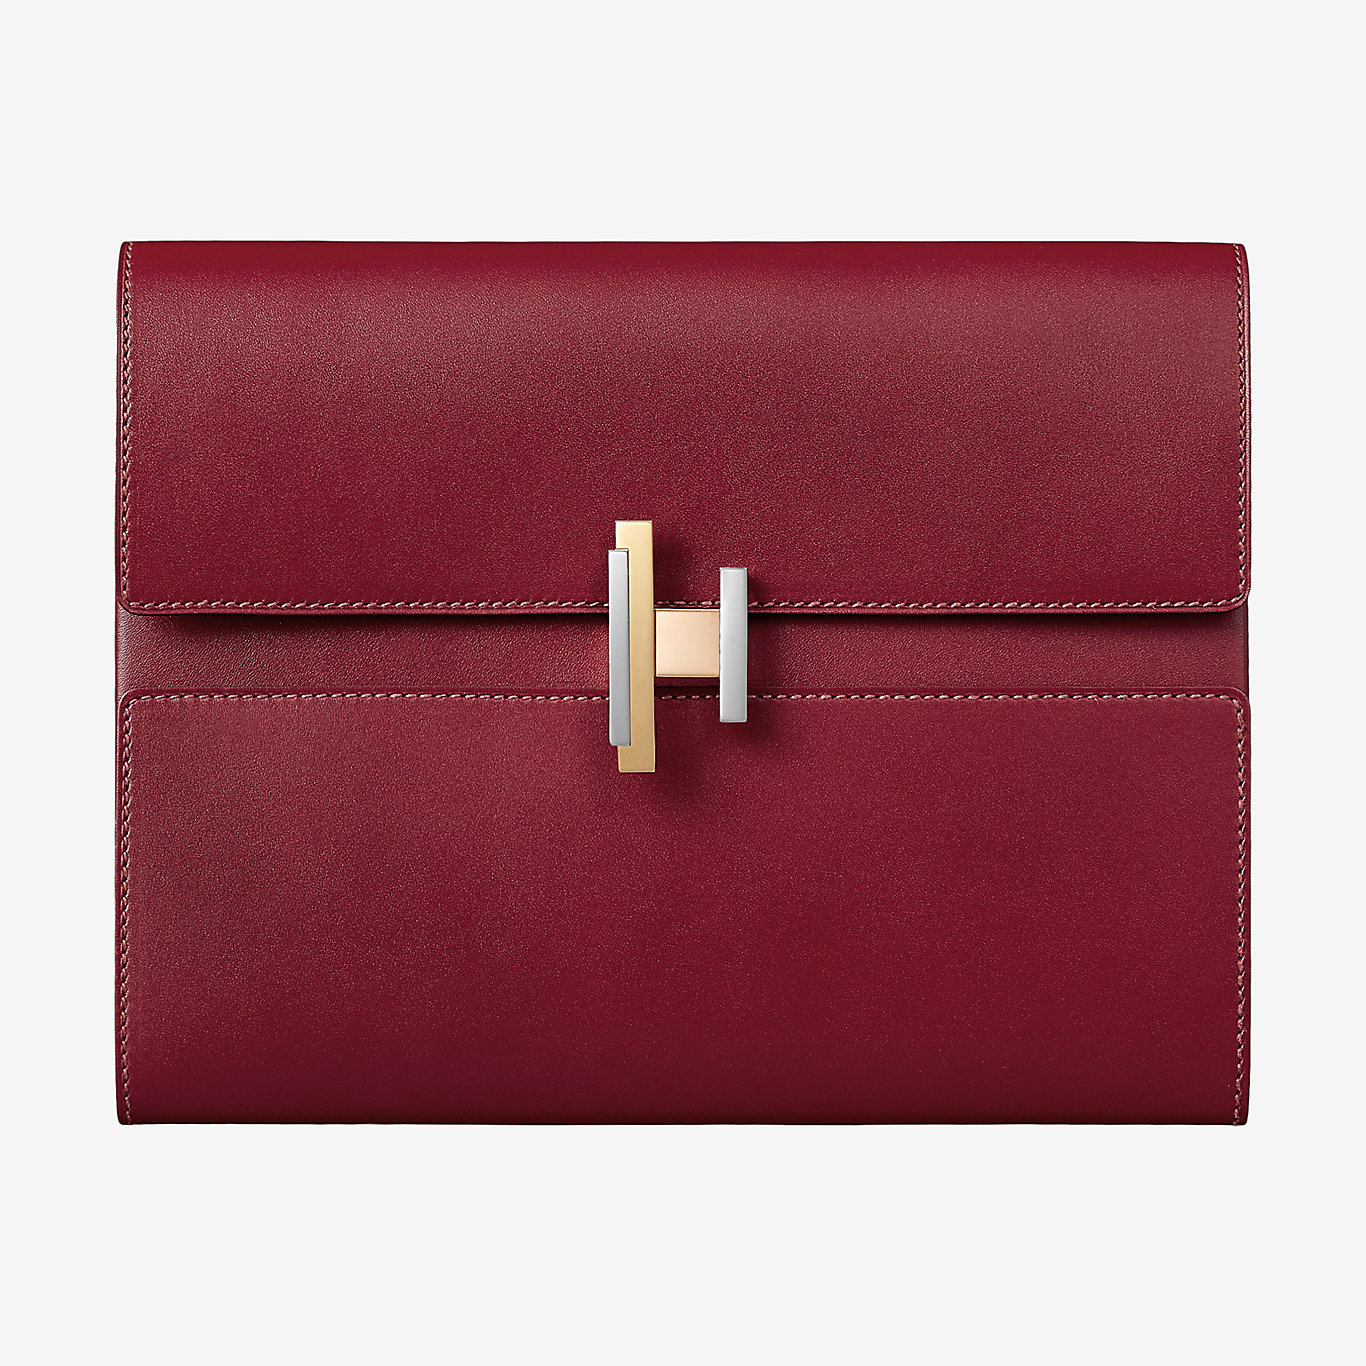 Hermes Cinhetic clutch, medium model - front